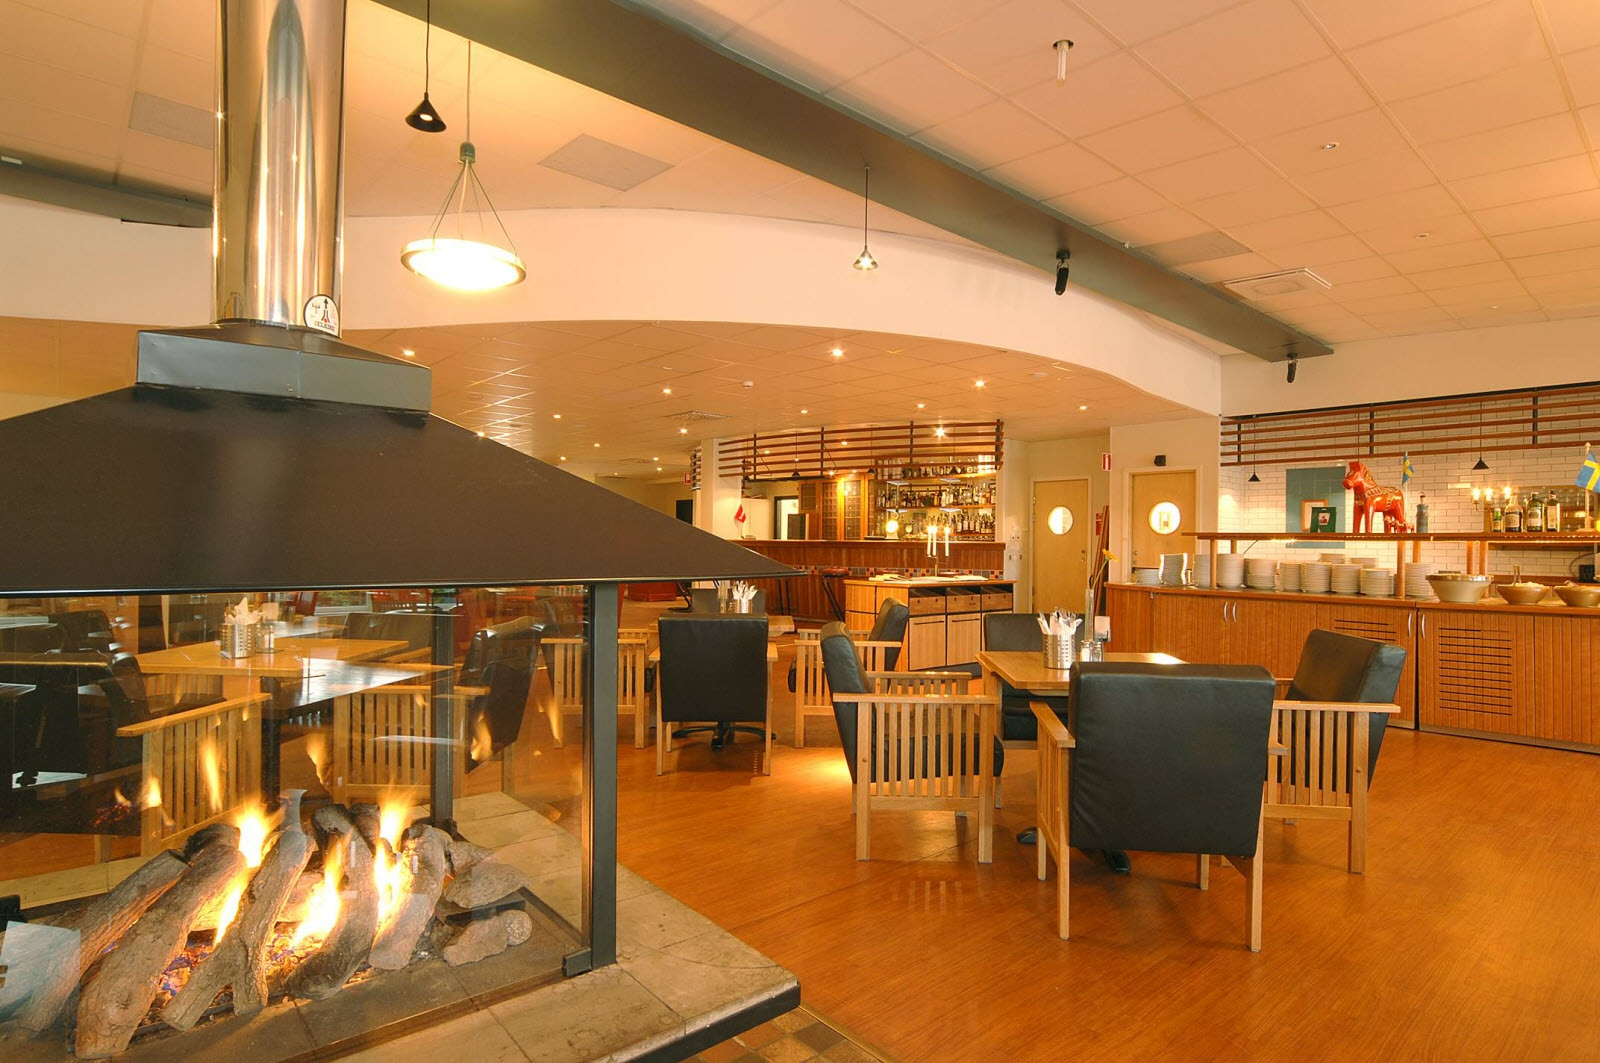 Restaurant, fireplace